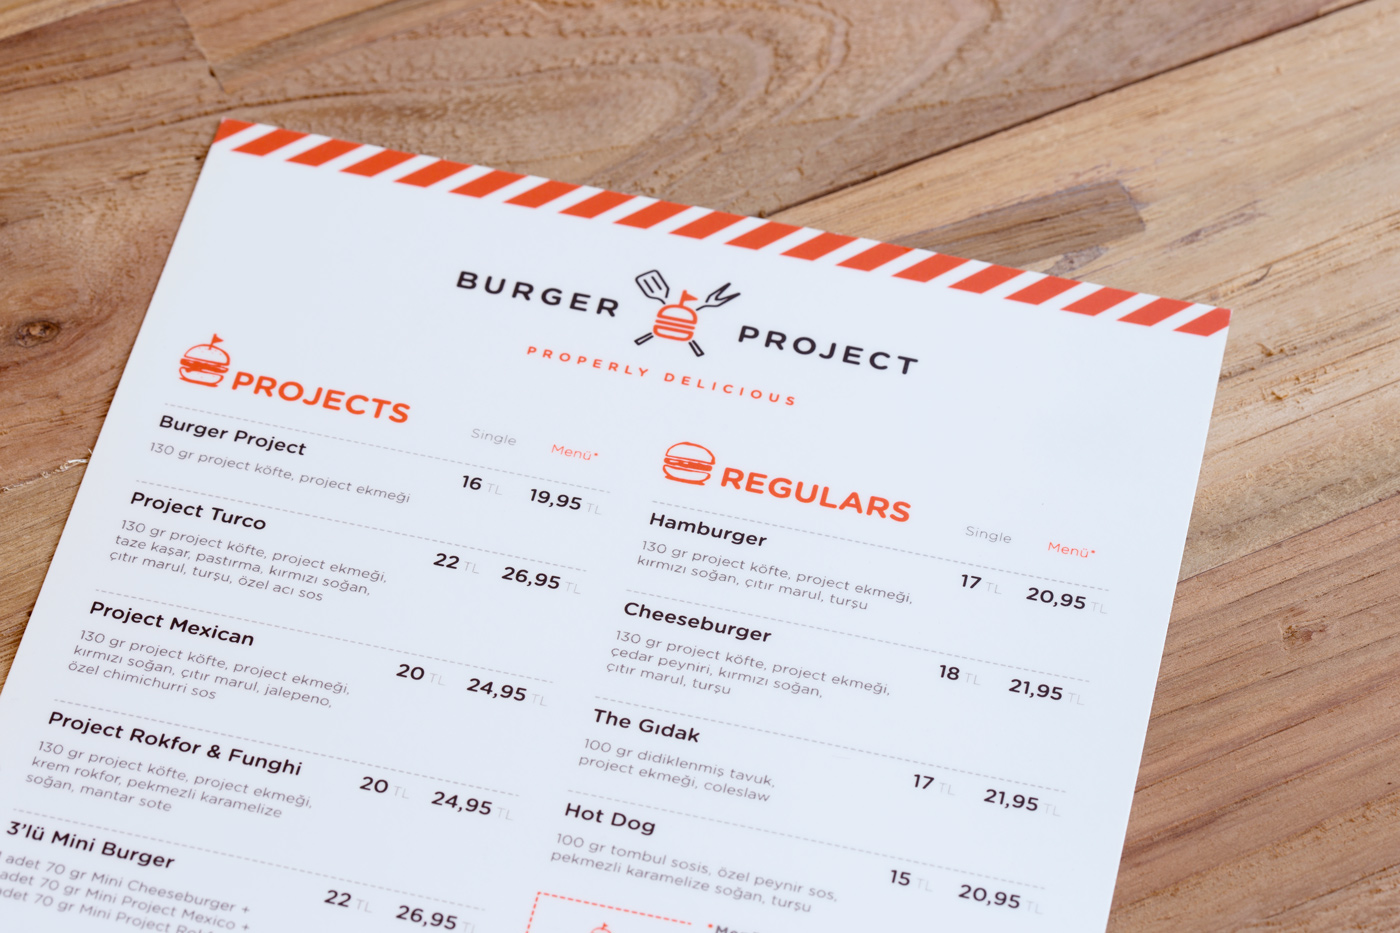 Burger Project Menu